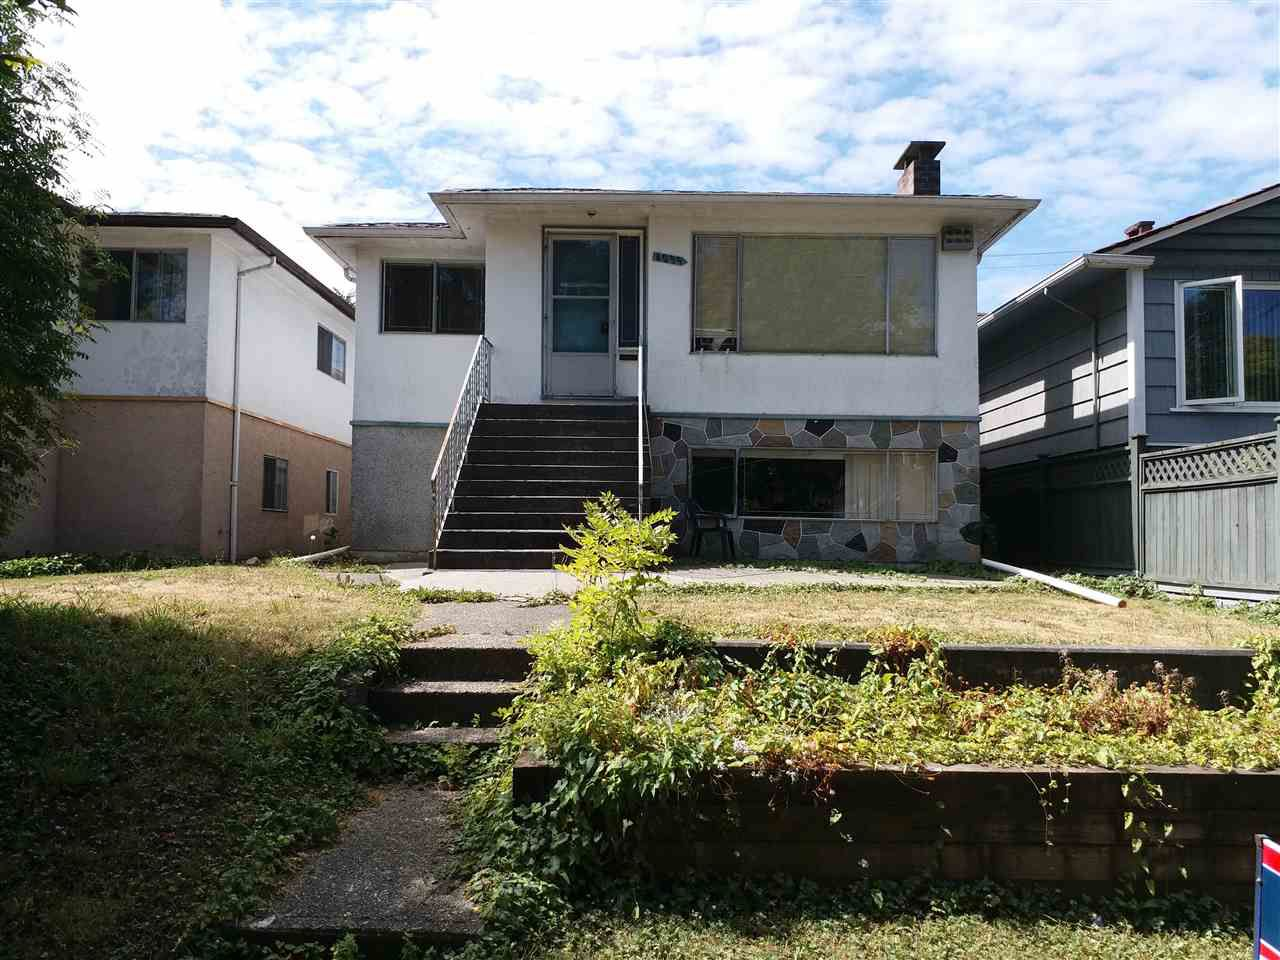 """Main Photo: 4039 BEATRICE Street in Vancouver: Victoria VE House for sale in """"VICTORIA"""" (Vancouver East)  : MLS®# R2197152"""